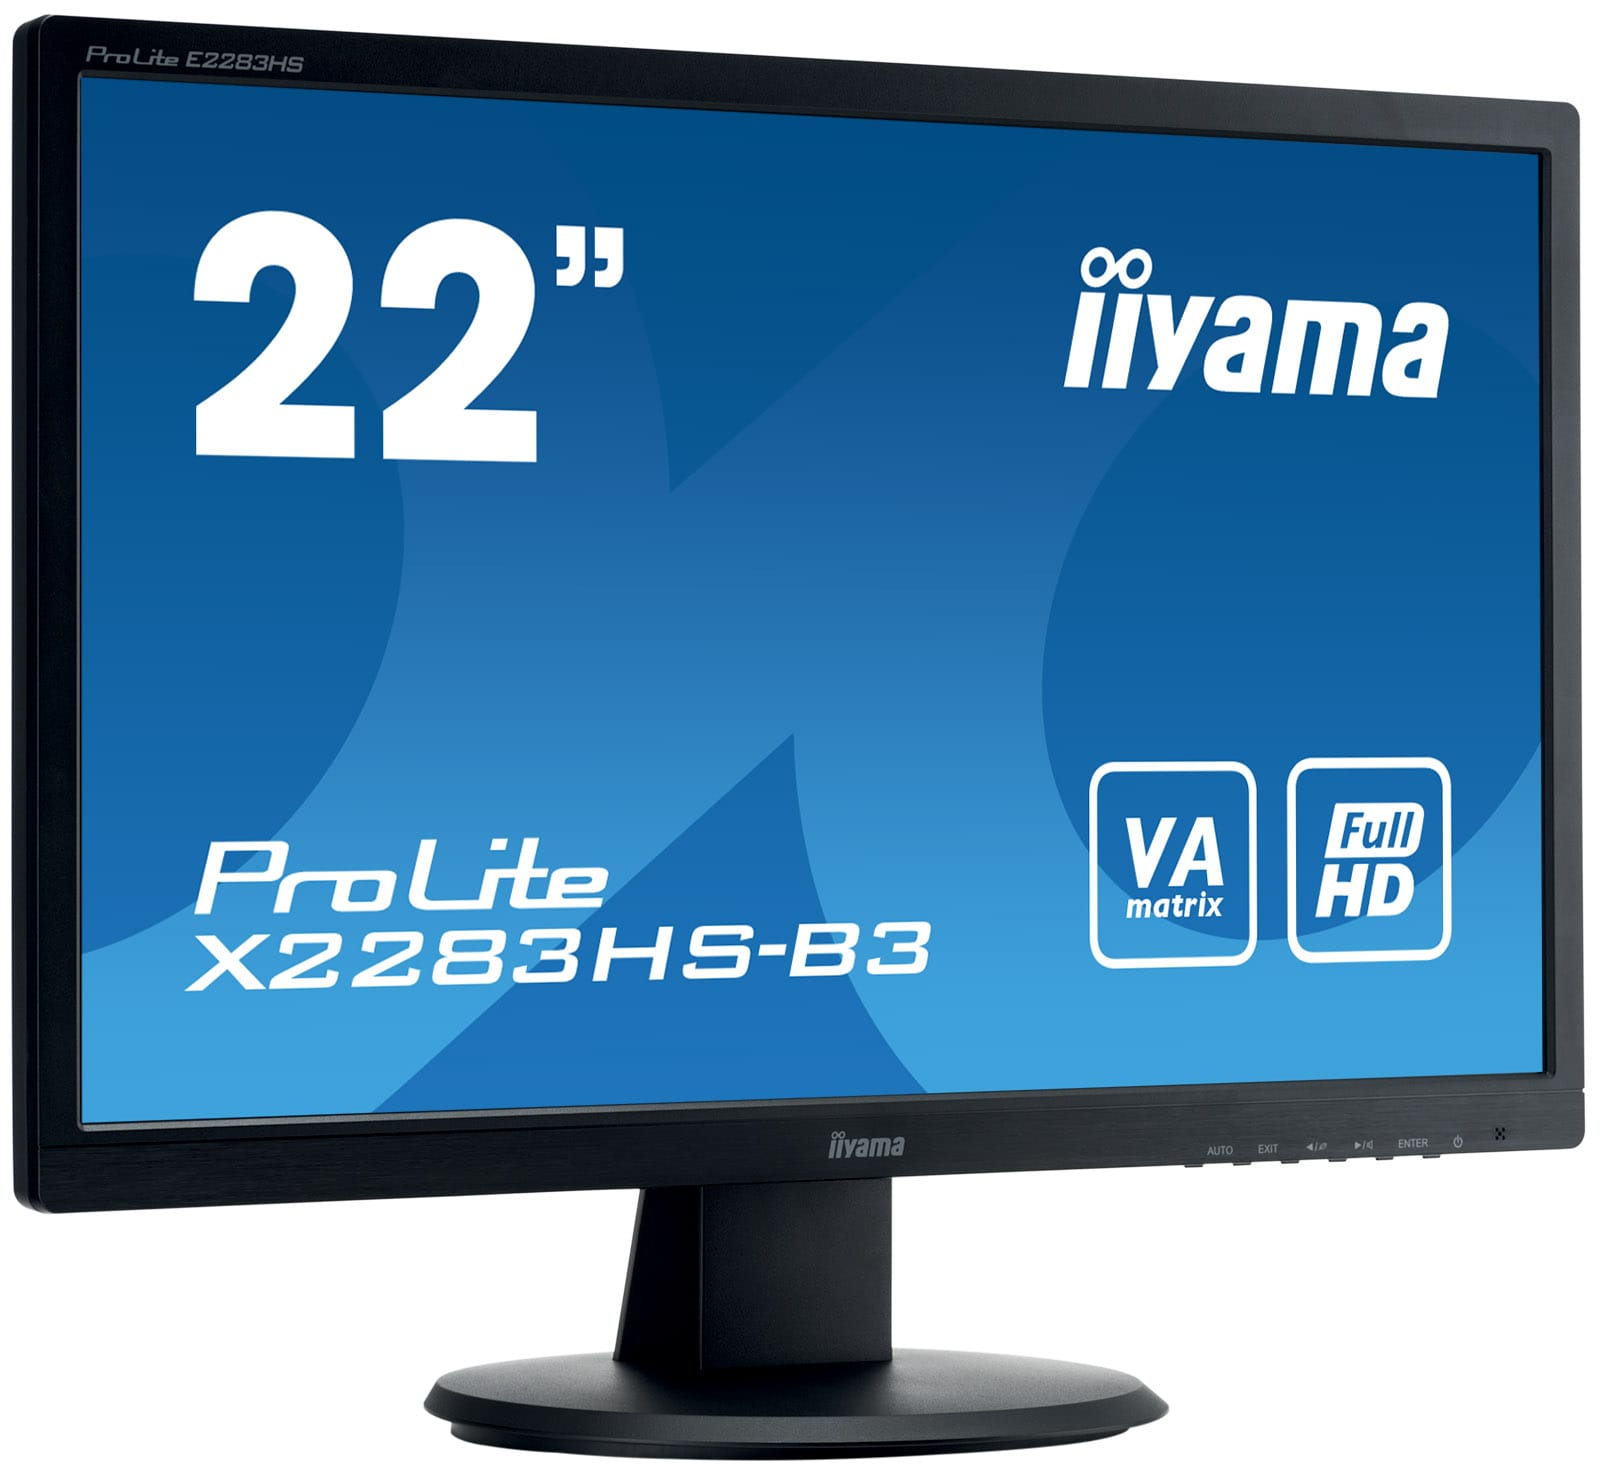 IIYAMA MONITOR WINDOWS 7 64BIT DRIVER DOWNLOAD